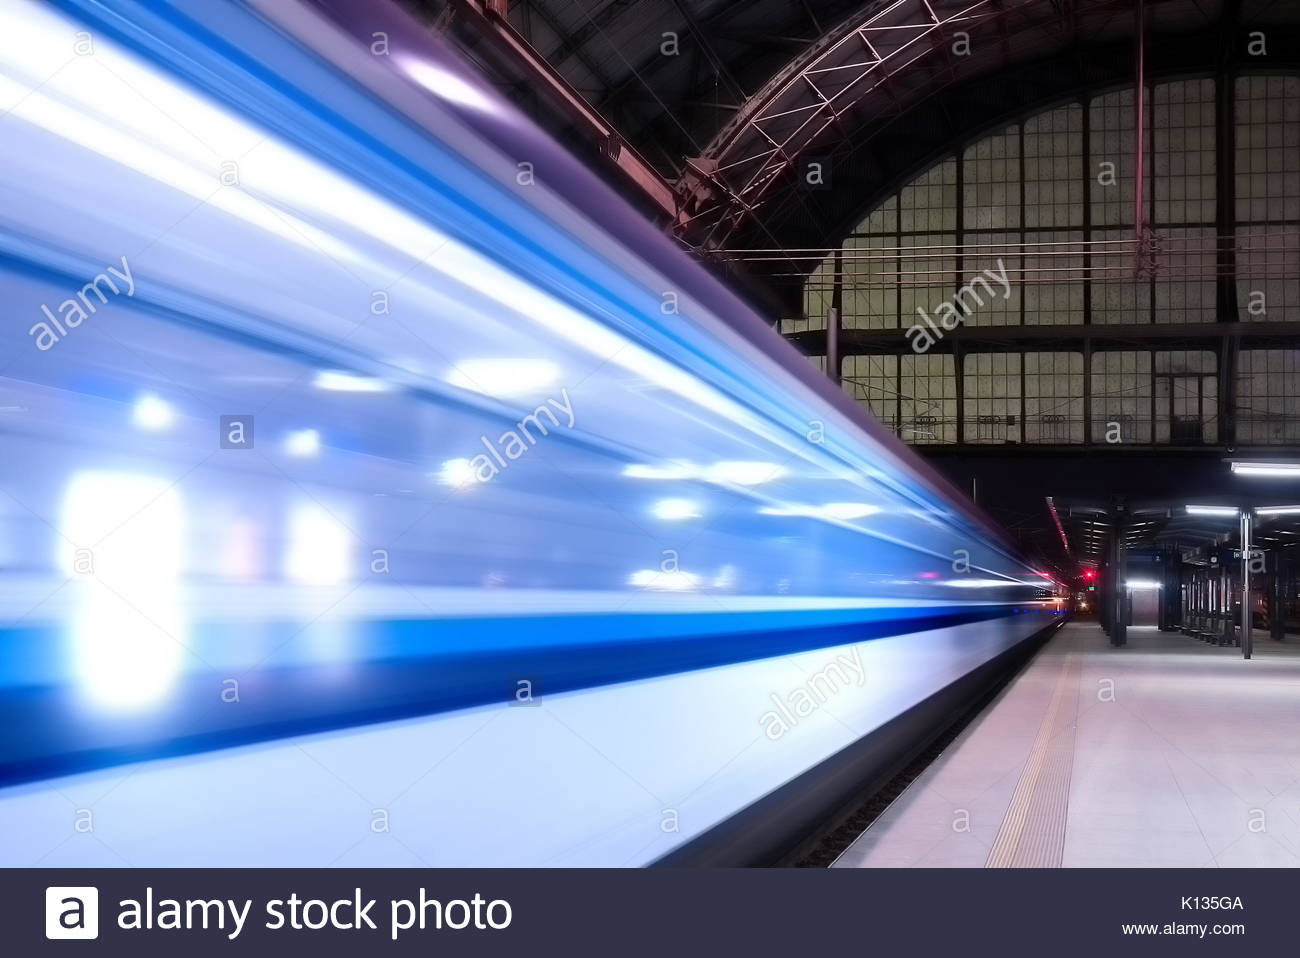 Train speeding through railway station during busy night time with extended motion. - Stock Image